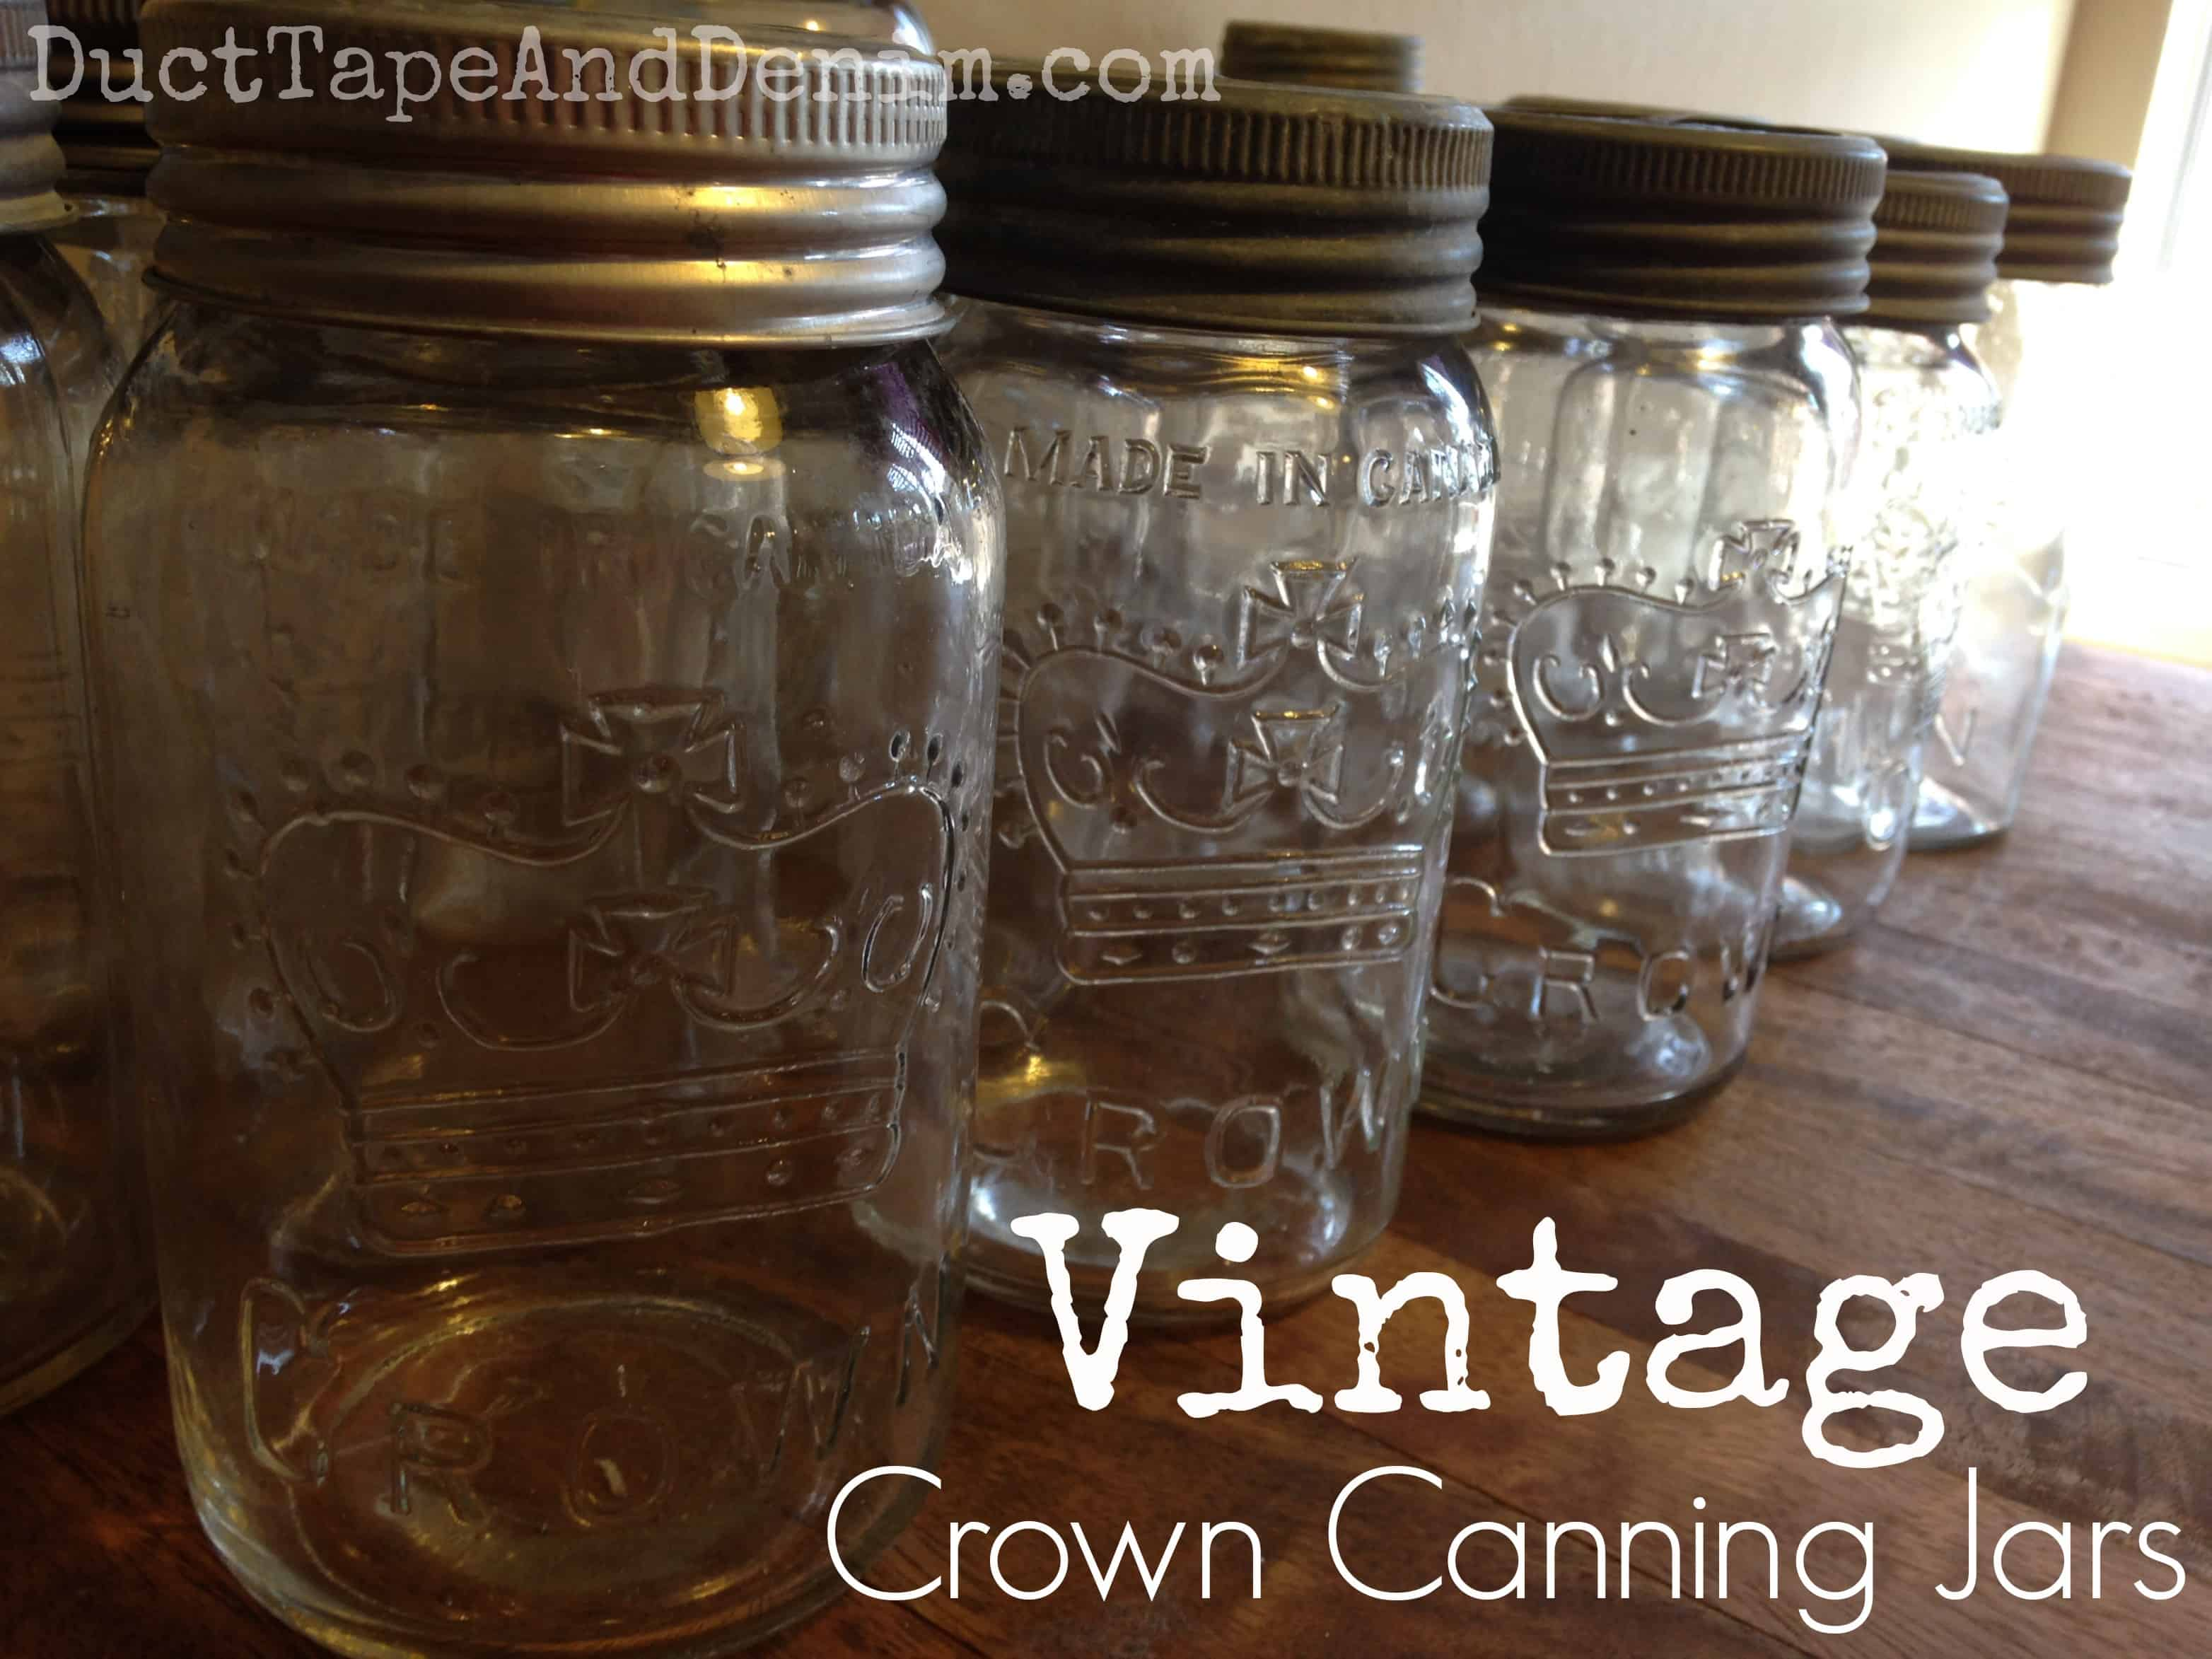 Vintage Crown canning jars with glass tops.